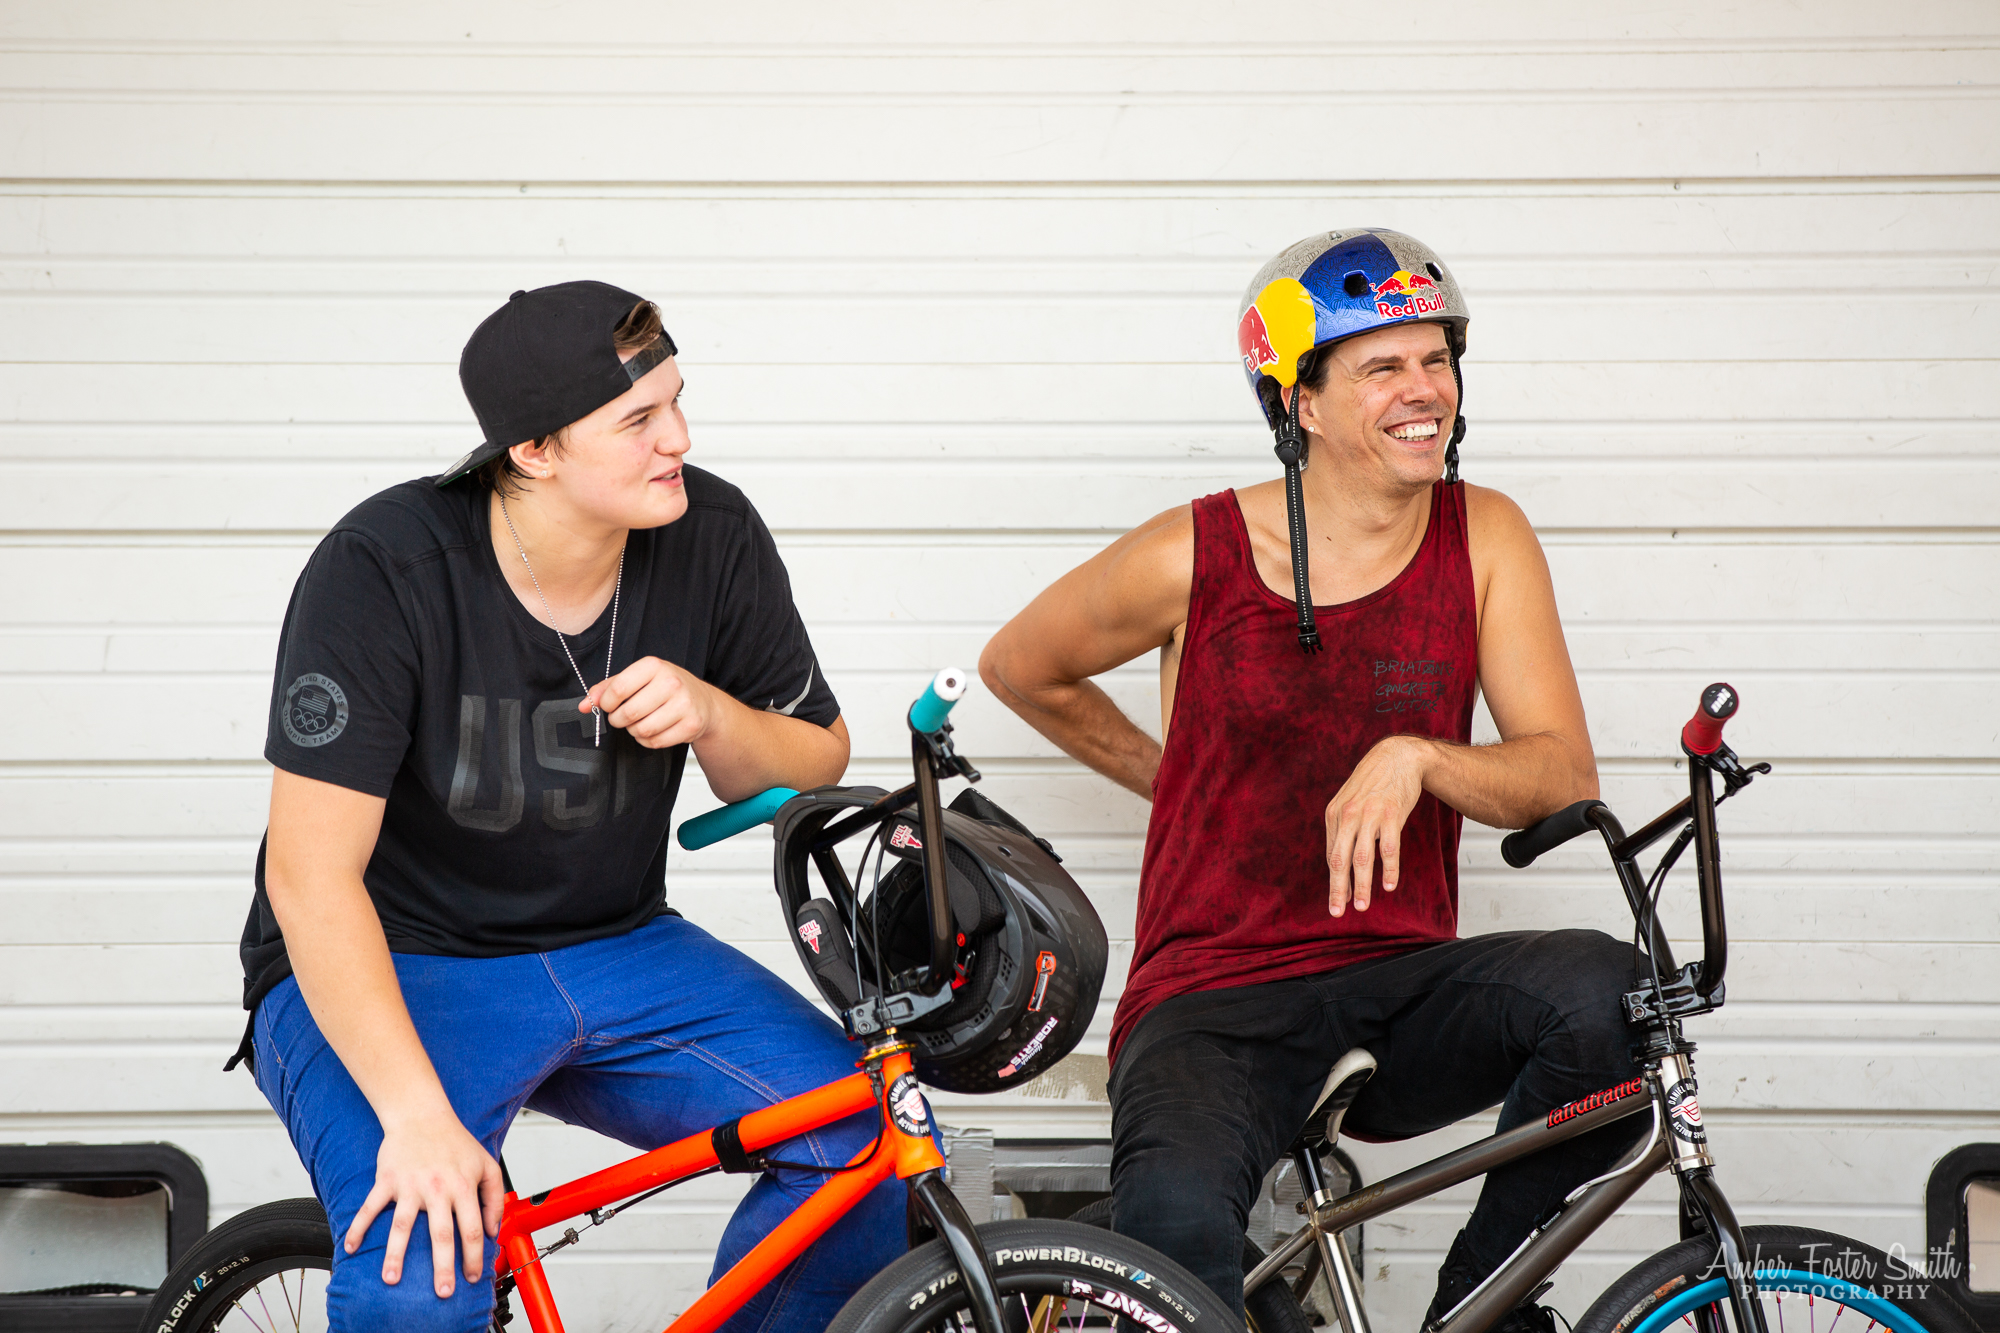 Two people sitting on bikes during an interview